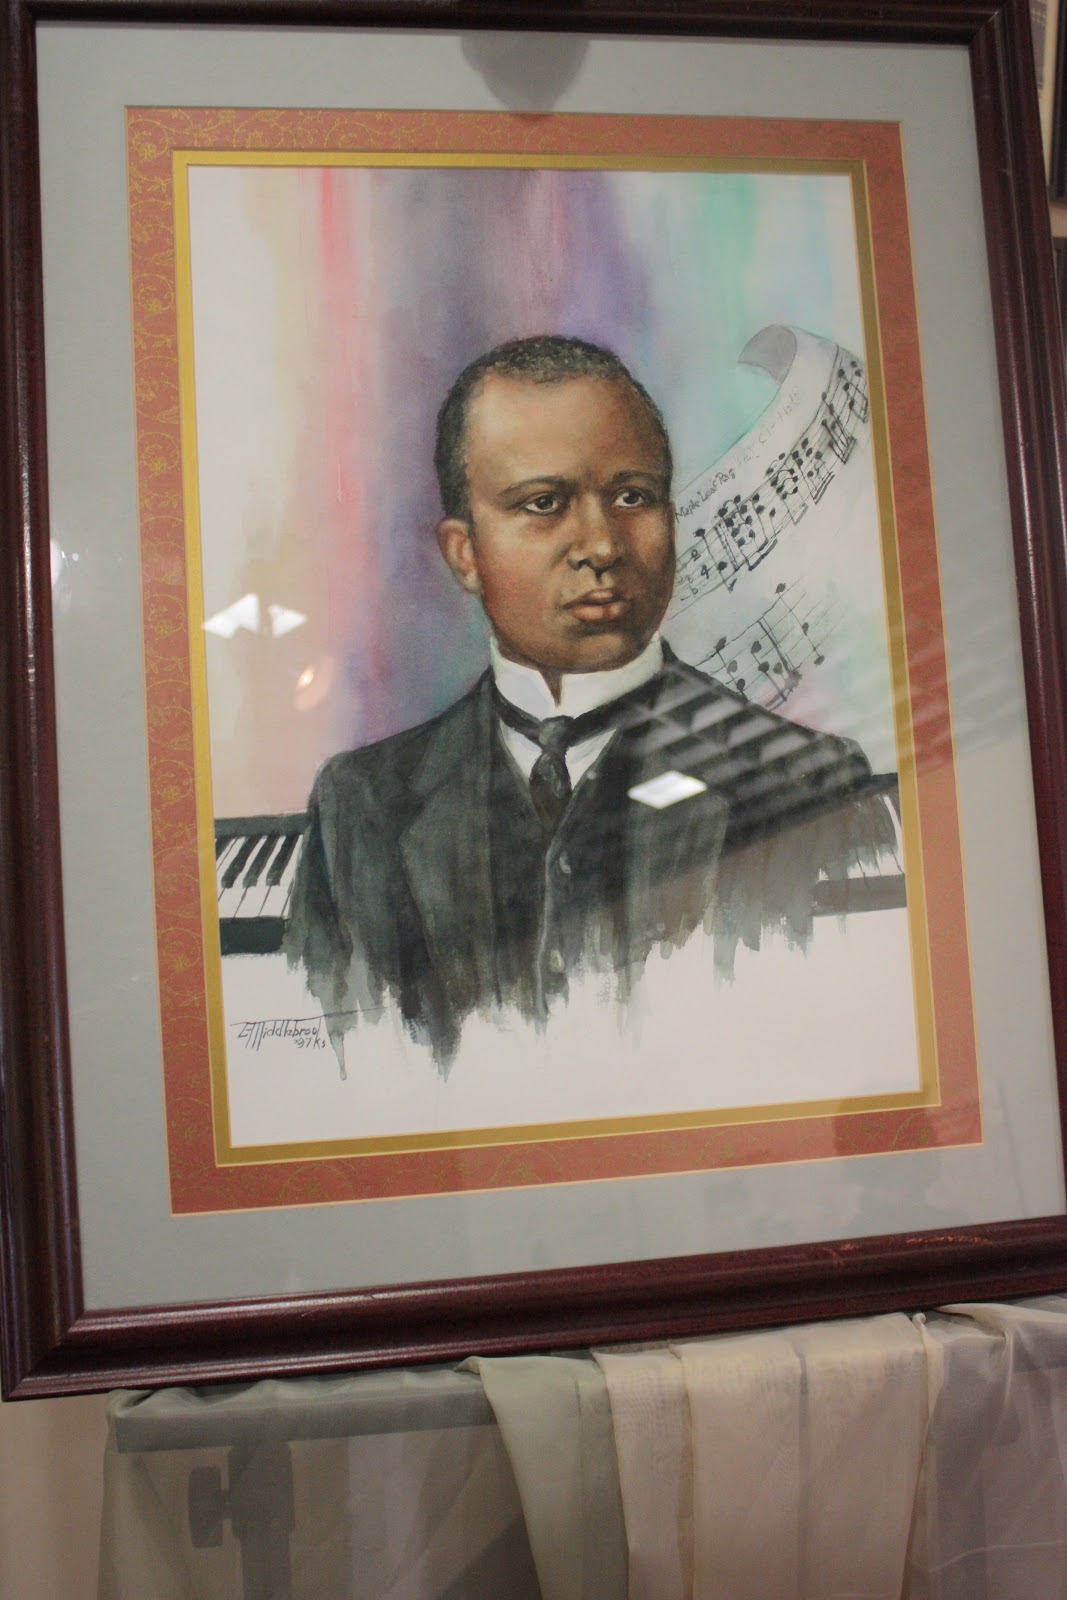 lone star historian city of museums this portrait of scott joplin was painted by luphelia middlebrooks and heads a music display in the museum of regional history